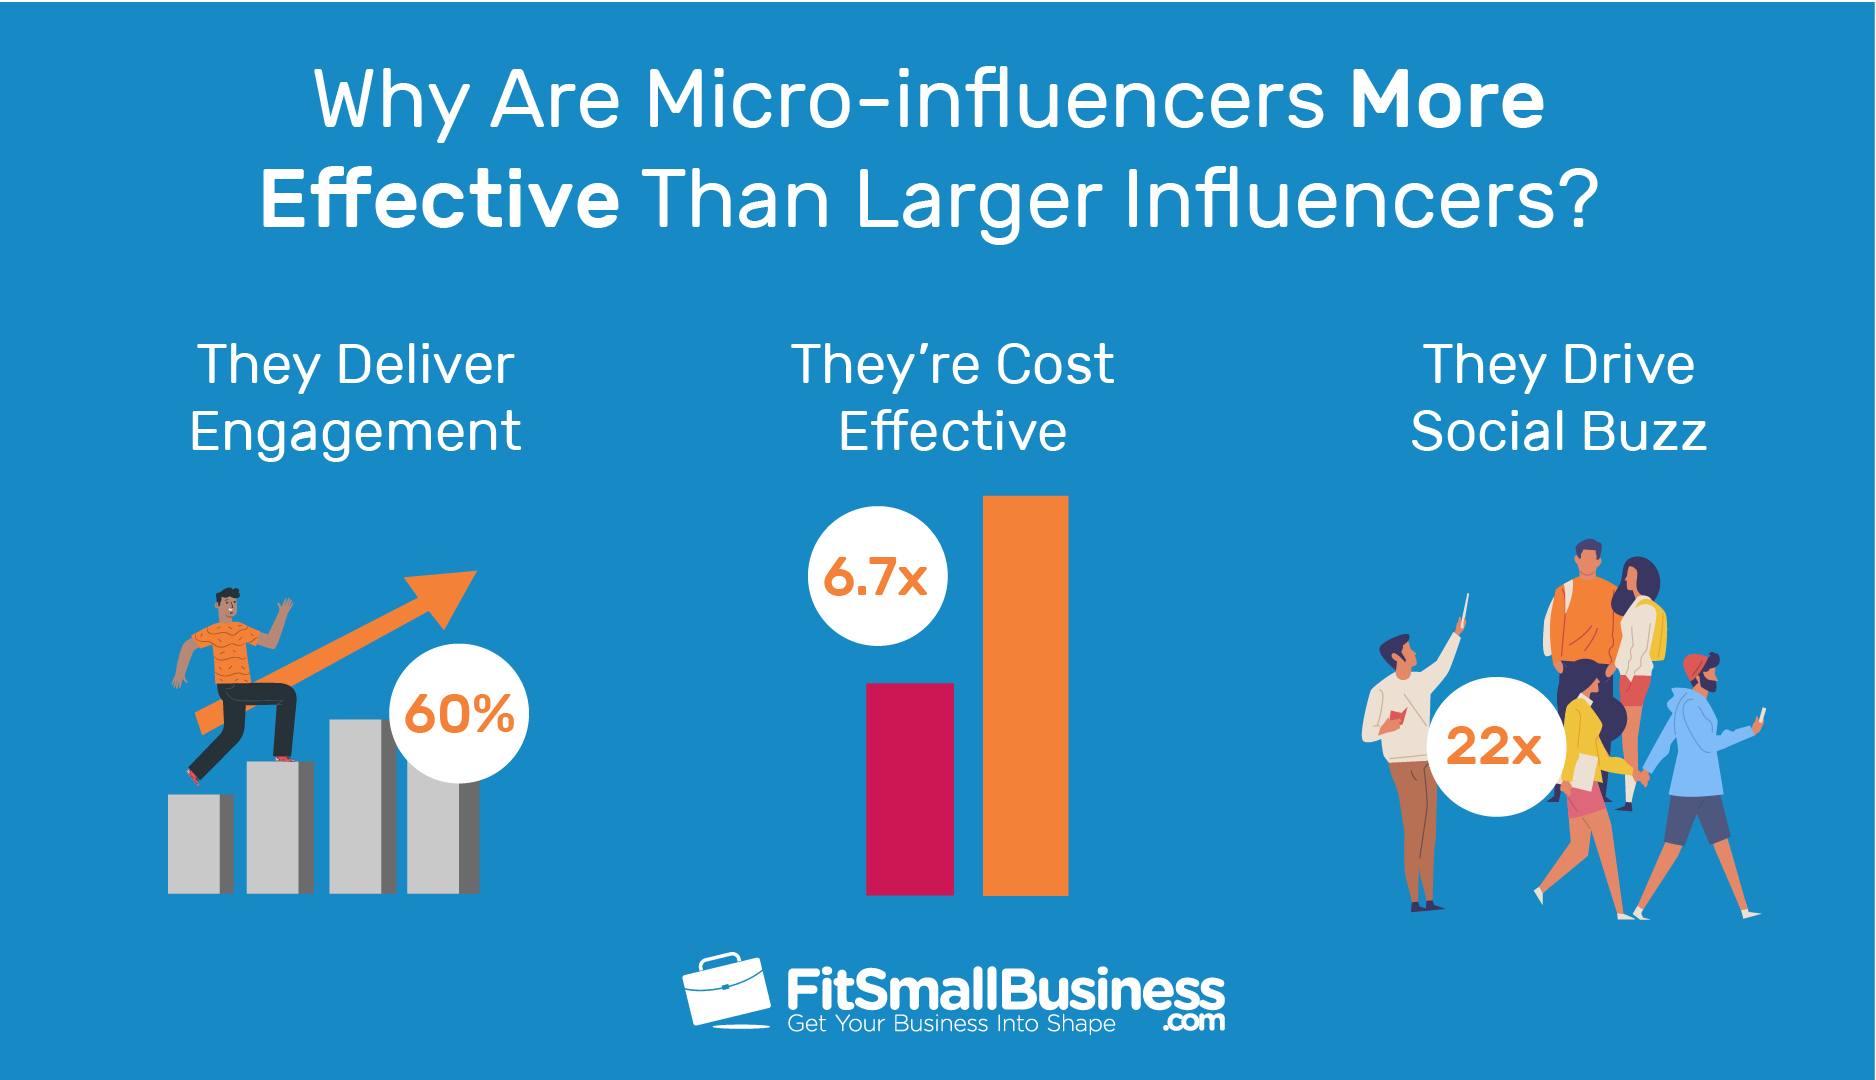 micro-influencers are more effective than larger influencers